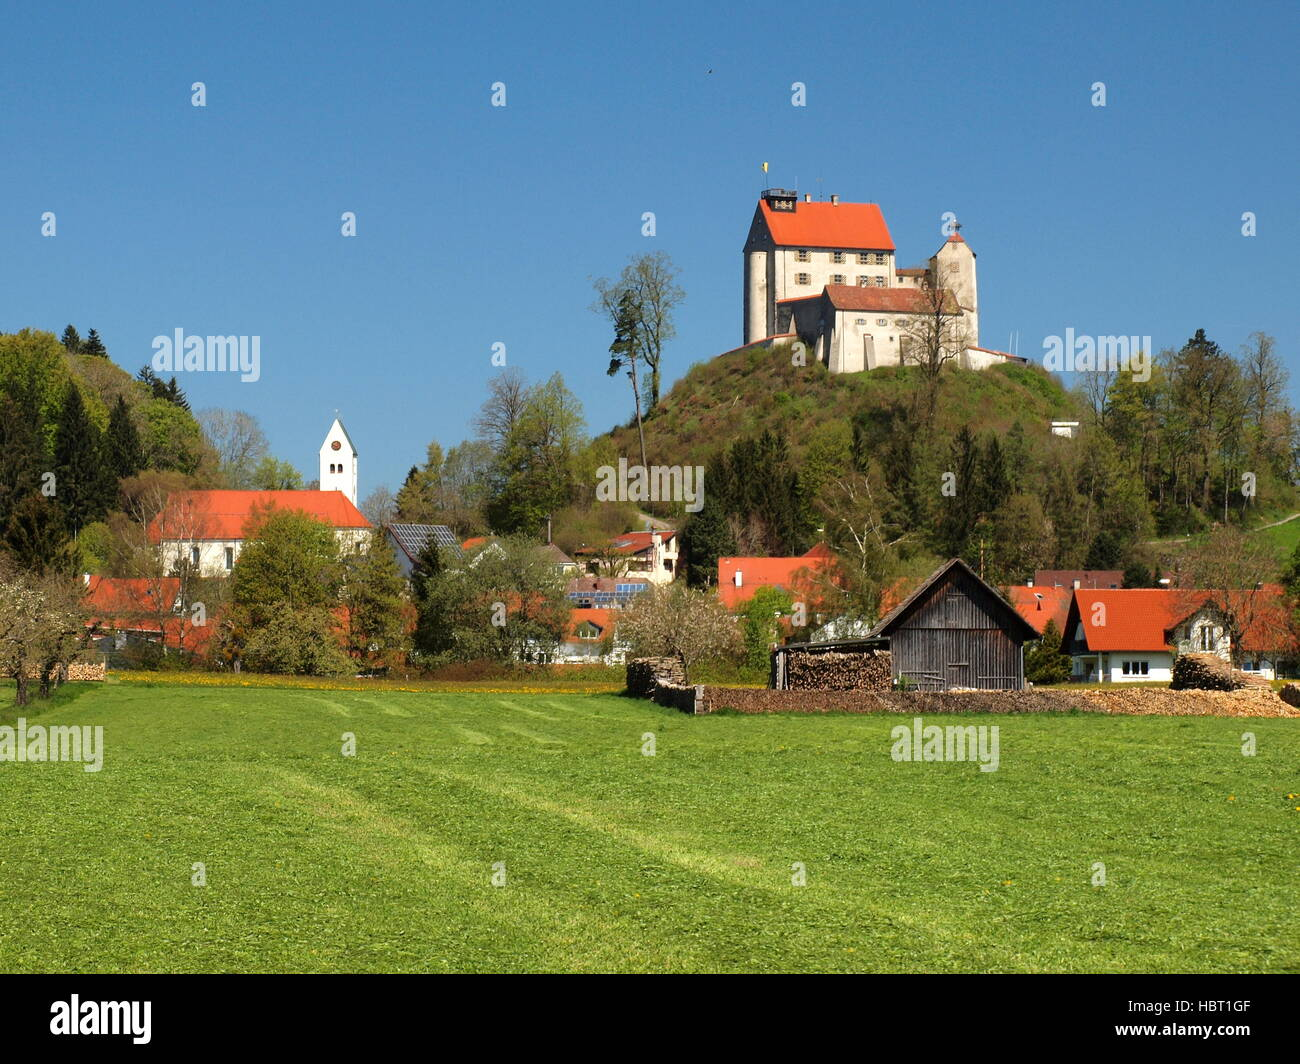 Waldburg - Village and castle - Stock Image